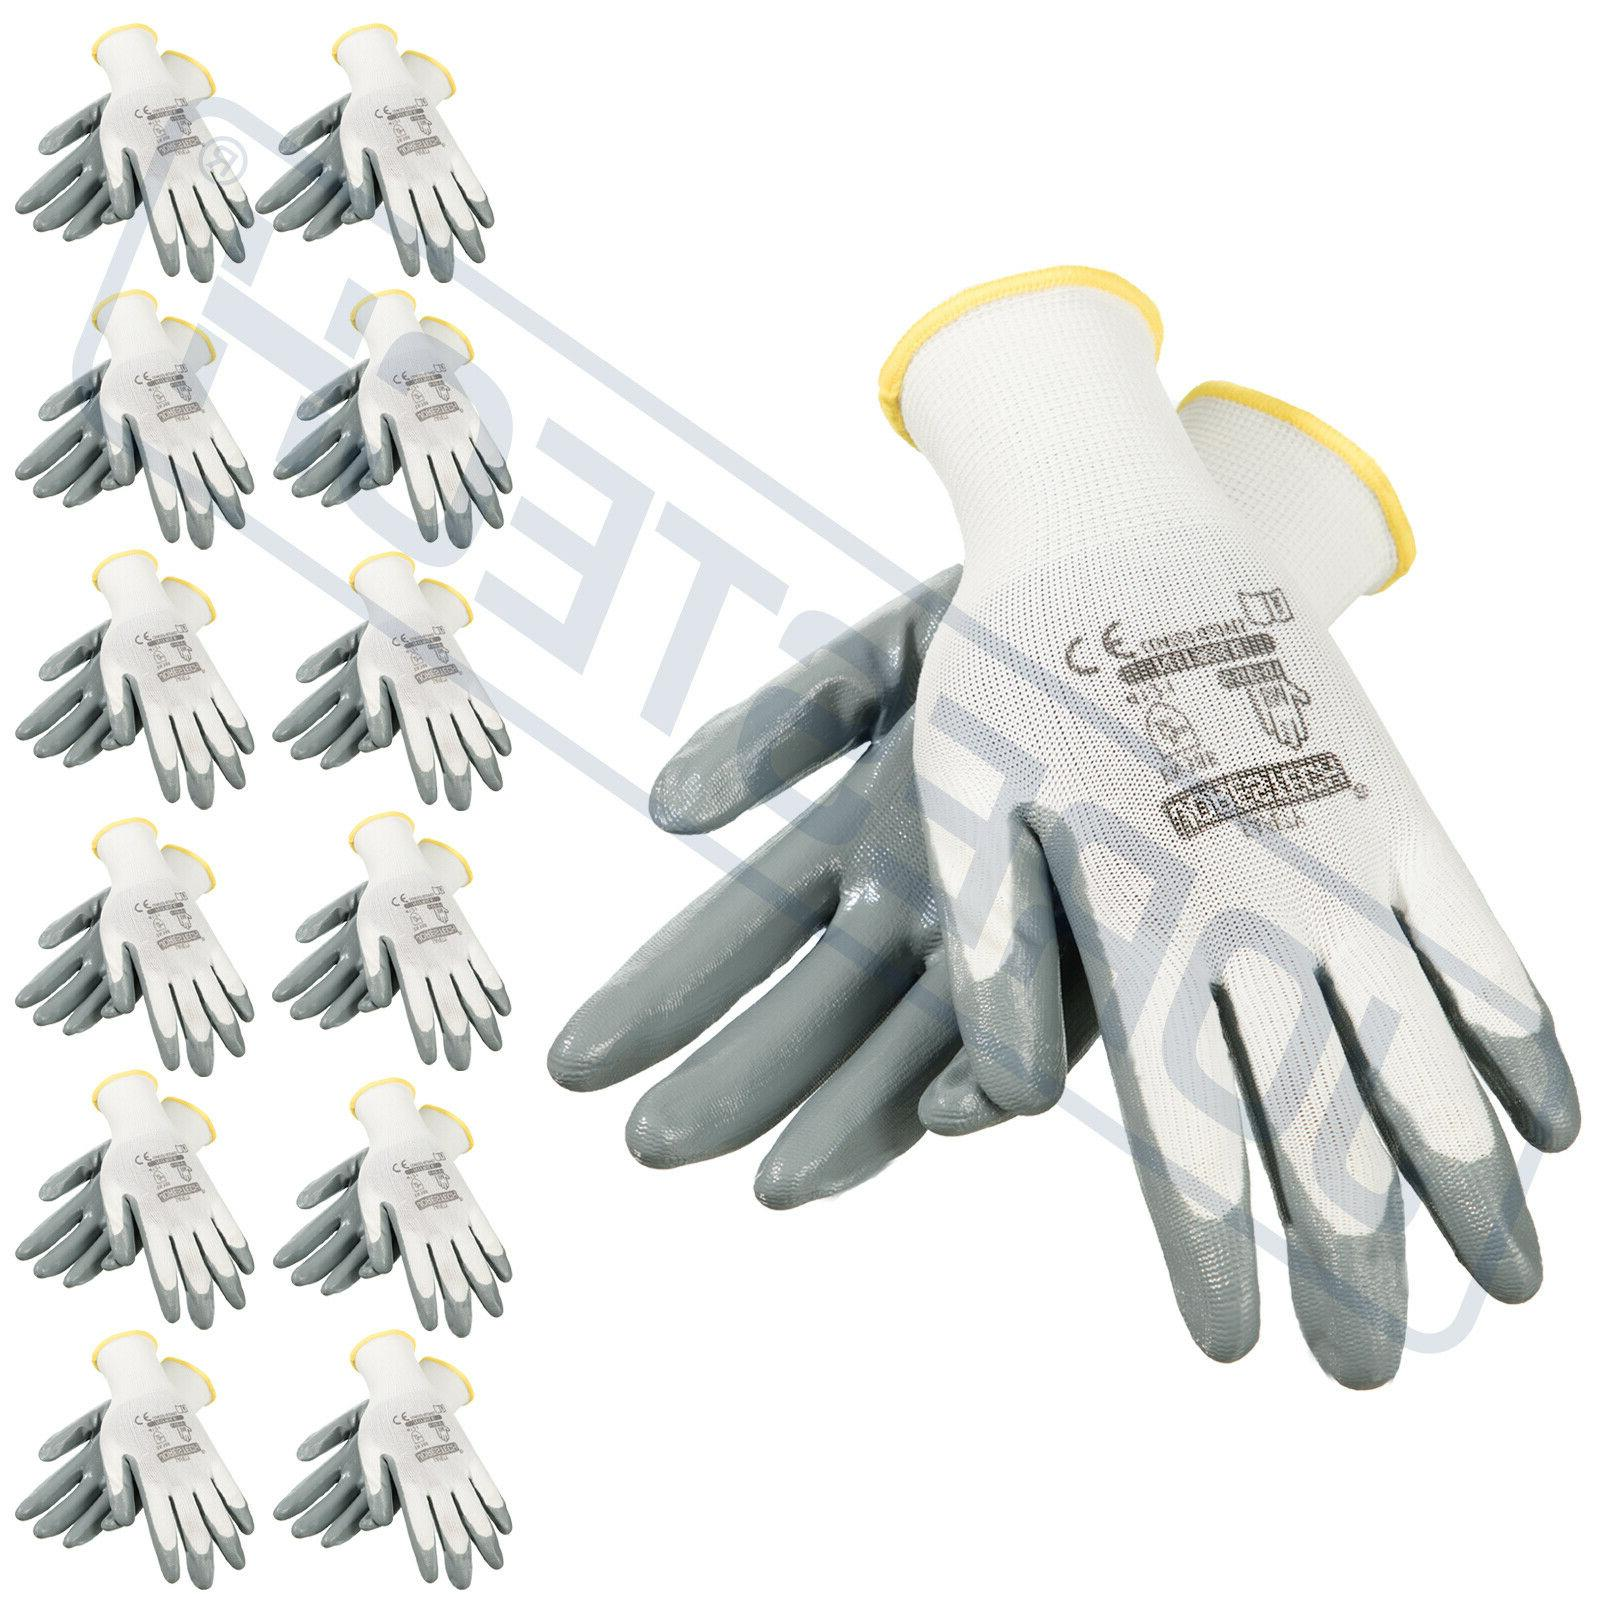 grey nitrile dipped poly work gloves 12